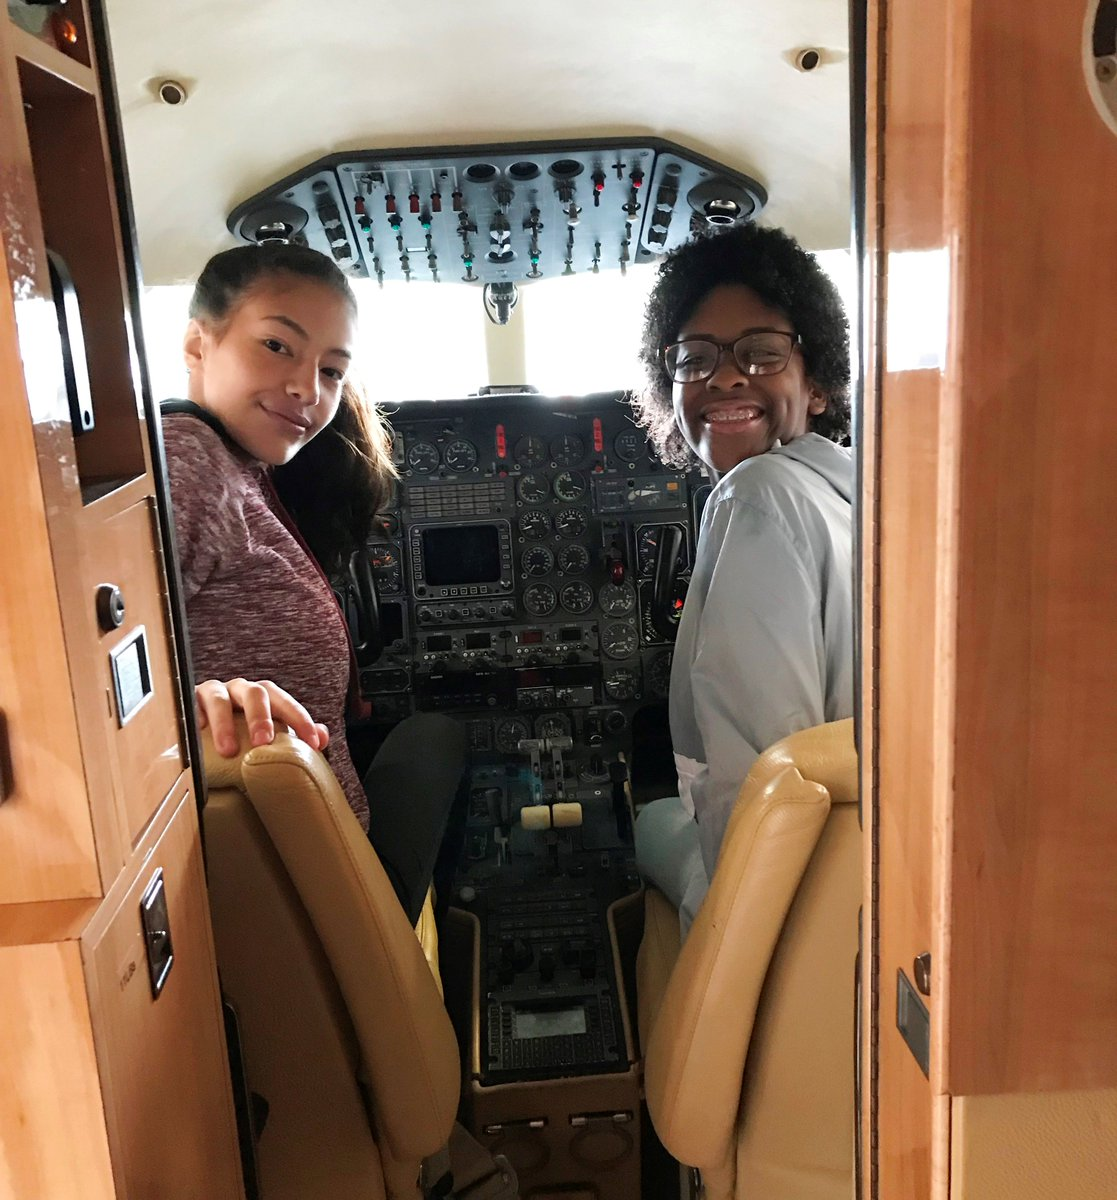 Our Eureka! program continues throughout the school year, with scholars getting together once a month for field trips, college prep, and other timely topics. This past Saturday, Eureka! scholars celebrated Girls in Aviation Day with a trip to Hartford–Brainard Airport. #STEM